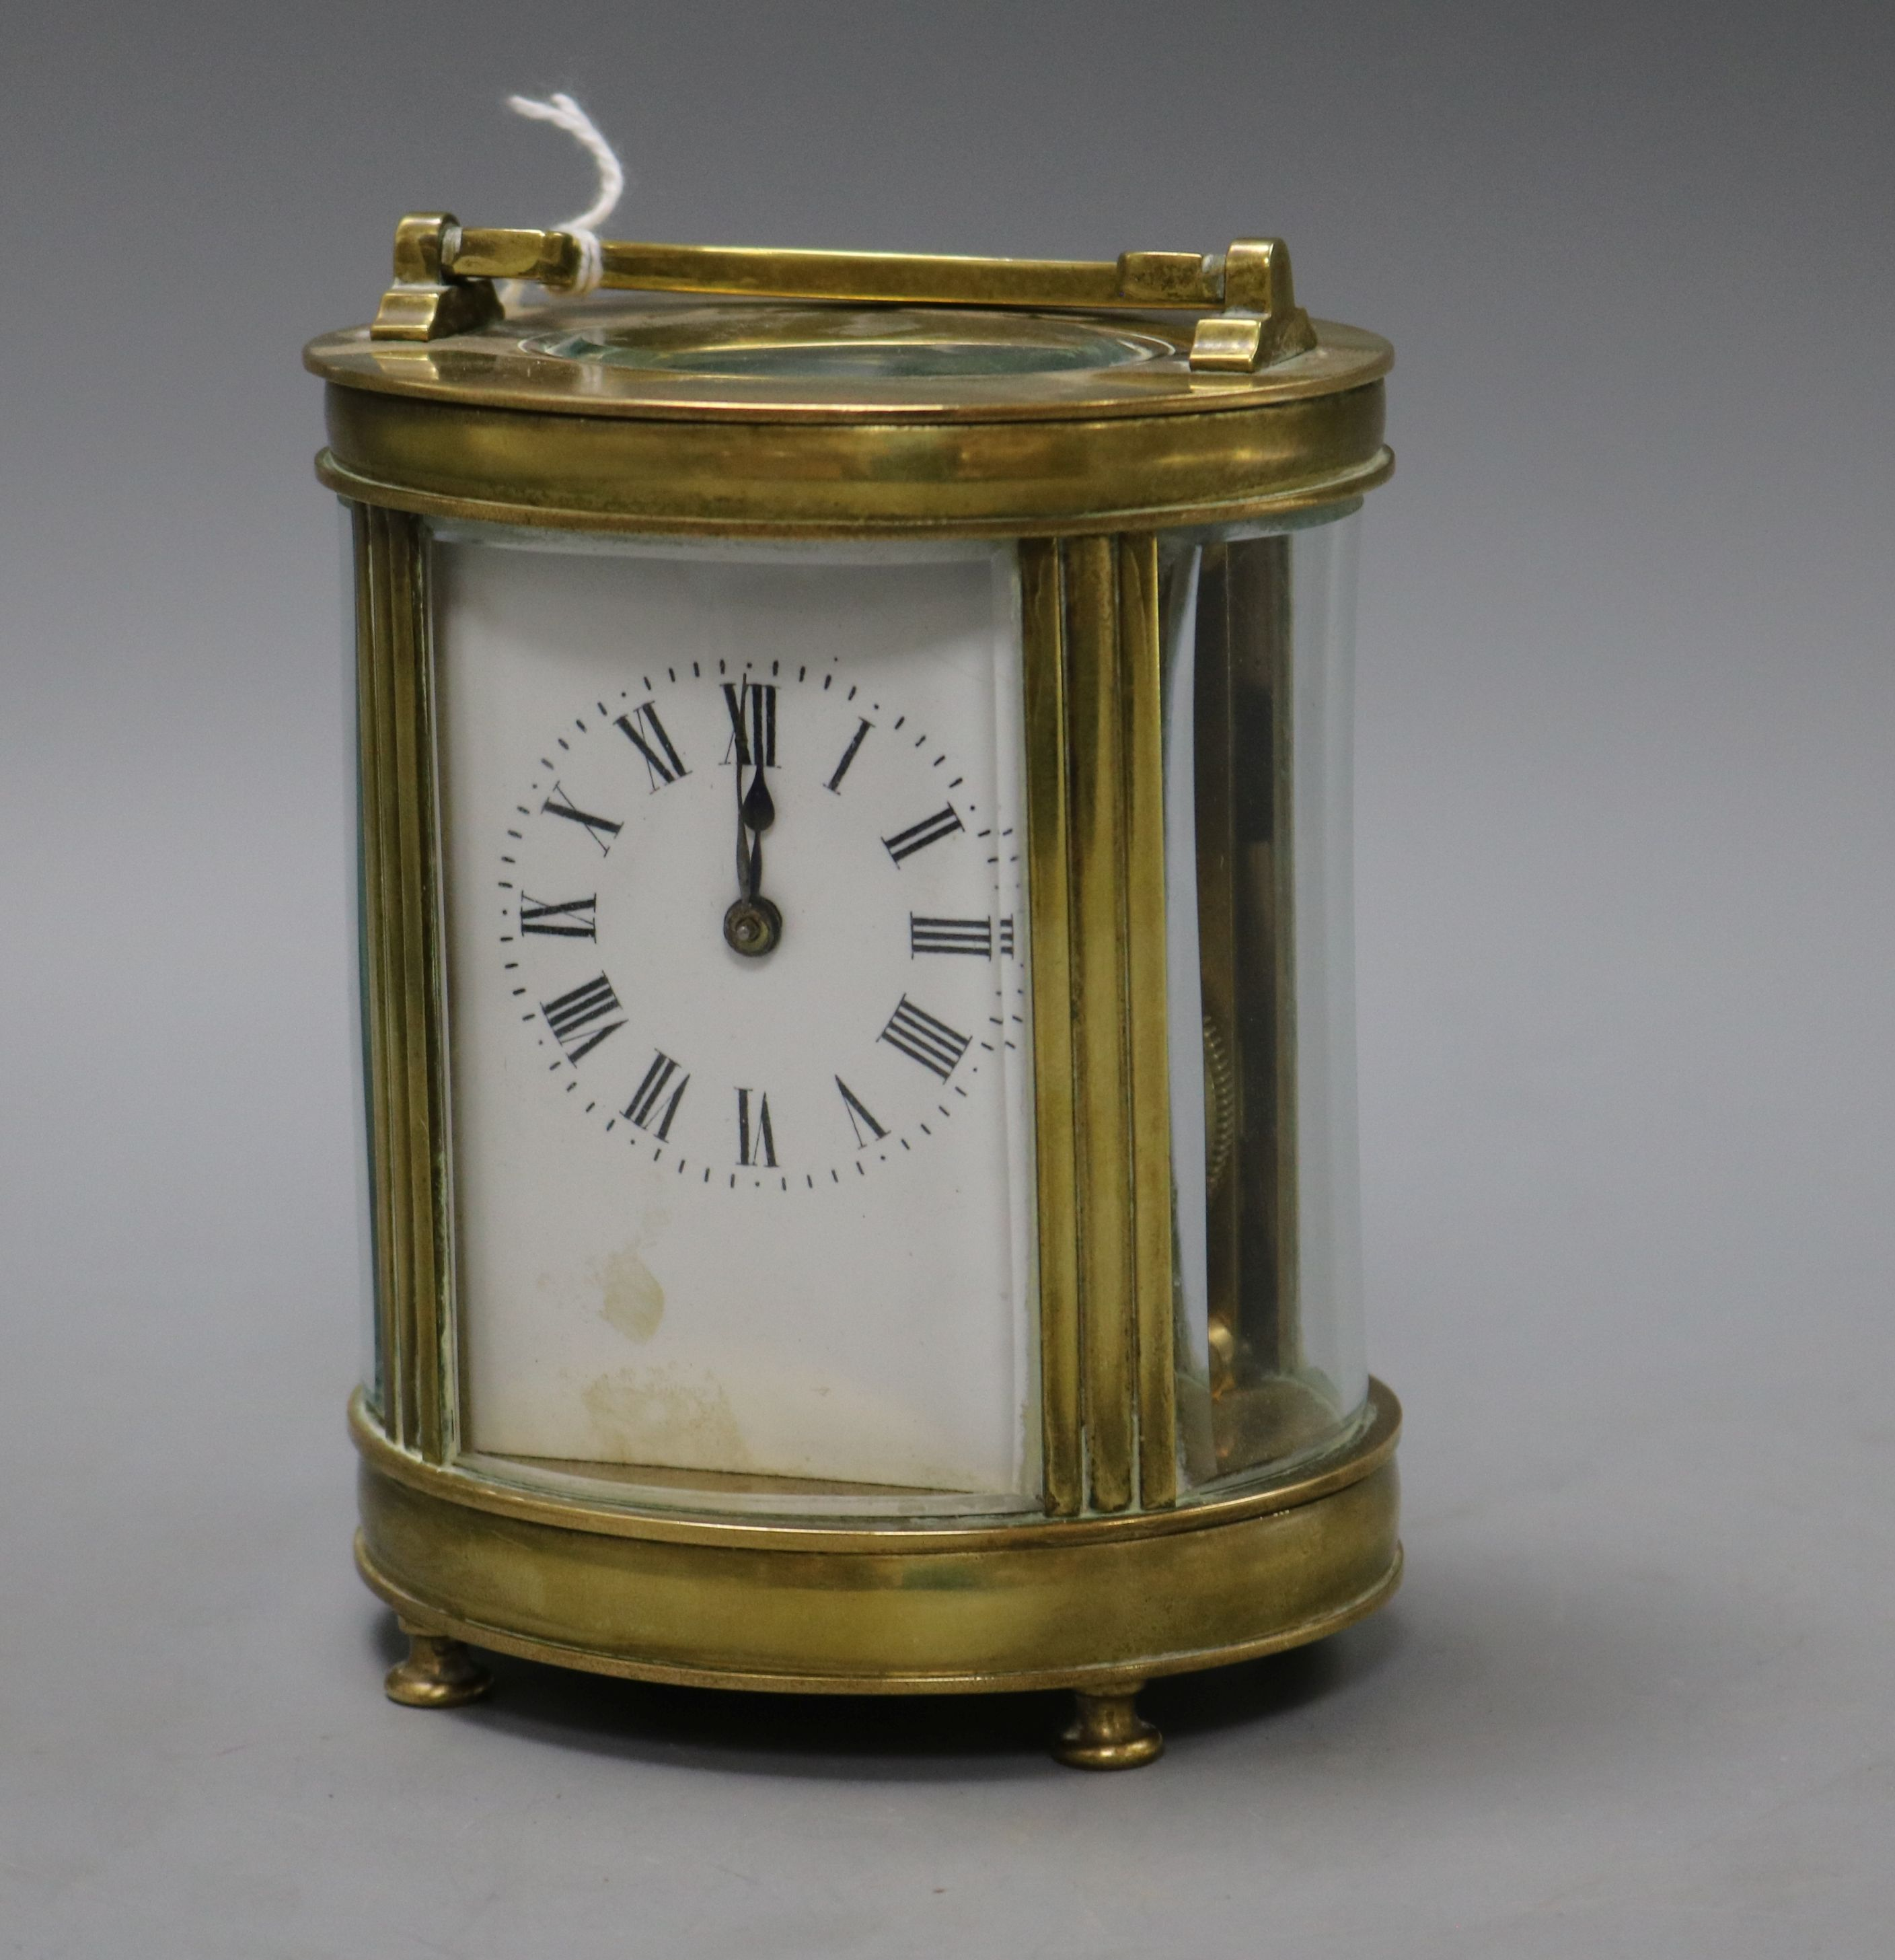 Lot 166 - An oval four glass carriage clock